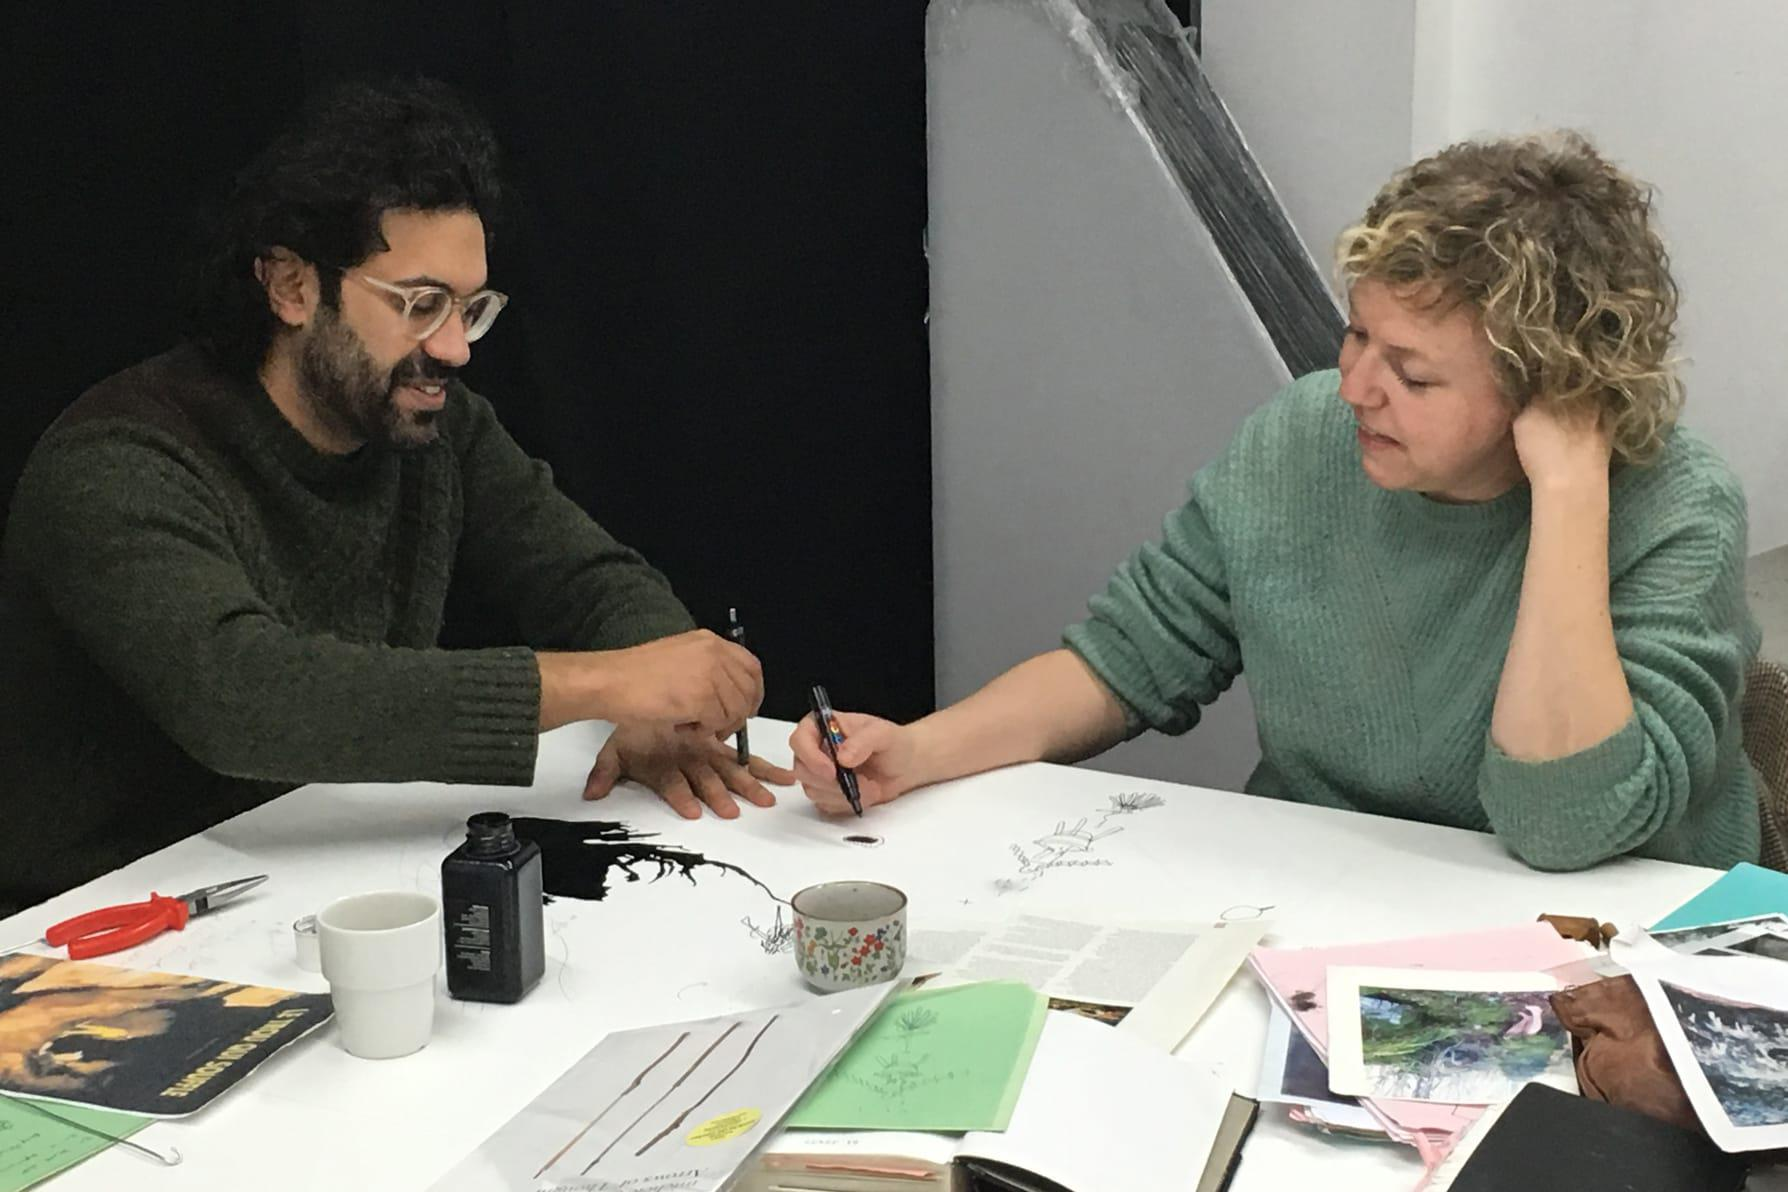 Haseeb Ahmed and Michèle Matyn at Rib. Photo: Piero Bisello